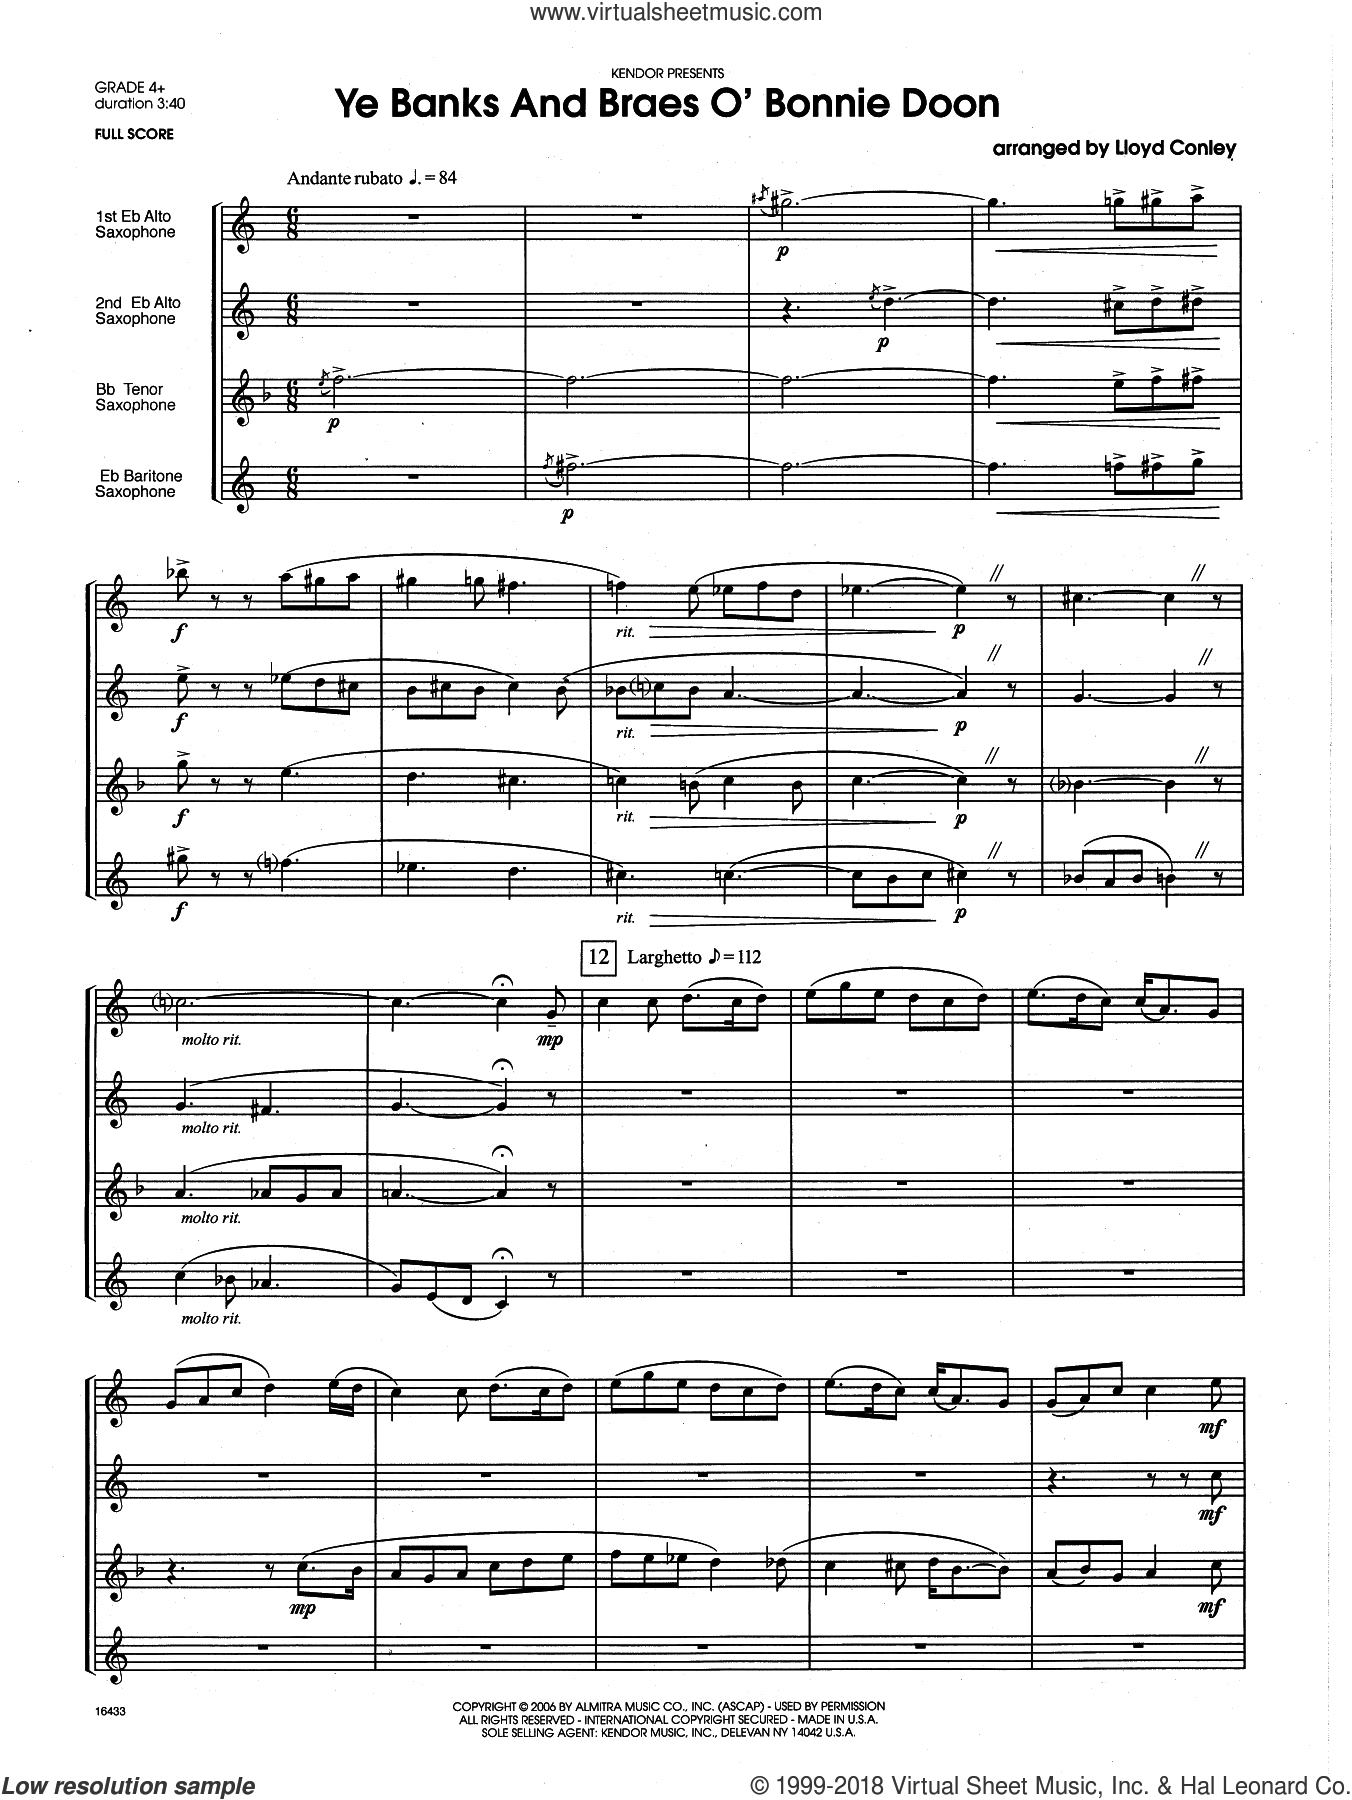 Ye Banks and Braes o' Bonnie Doon (COMPLETE) sheet music for saxophone quartet by Lloyd Conley, intermediate. Score Image Preview.